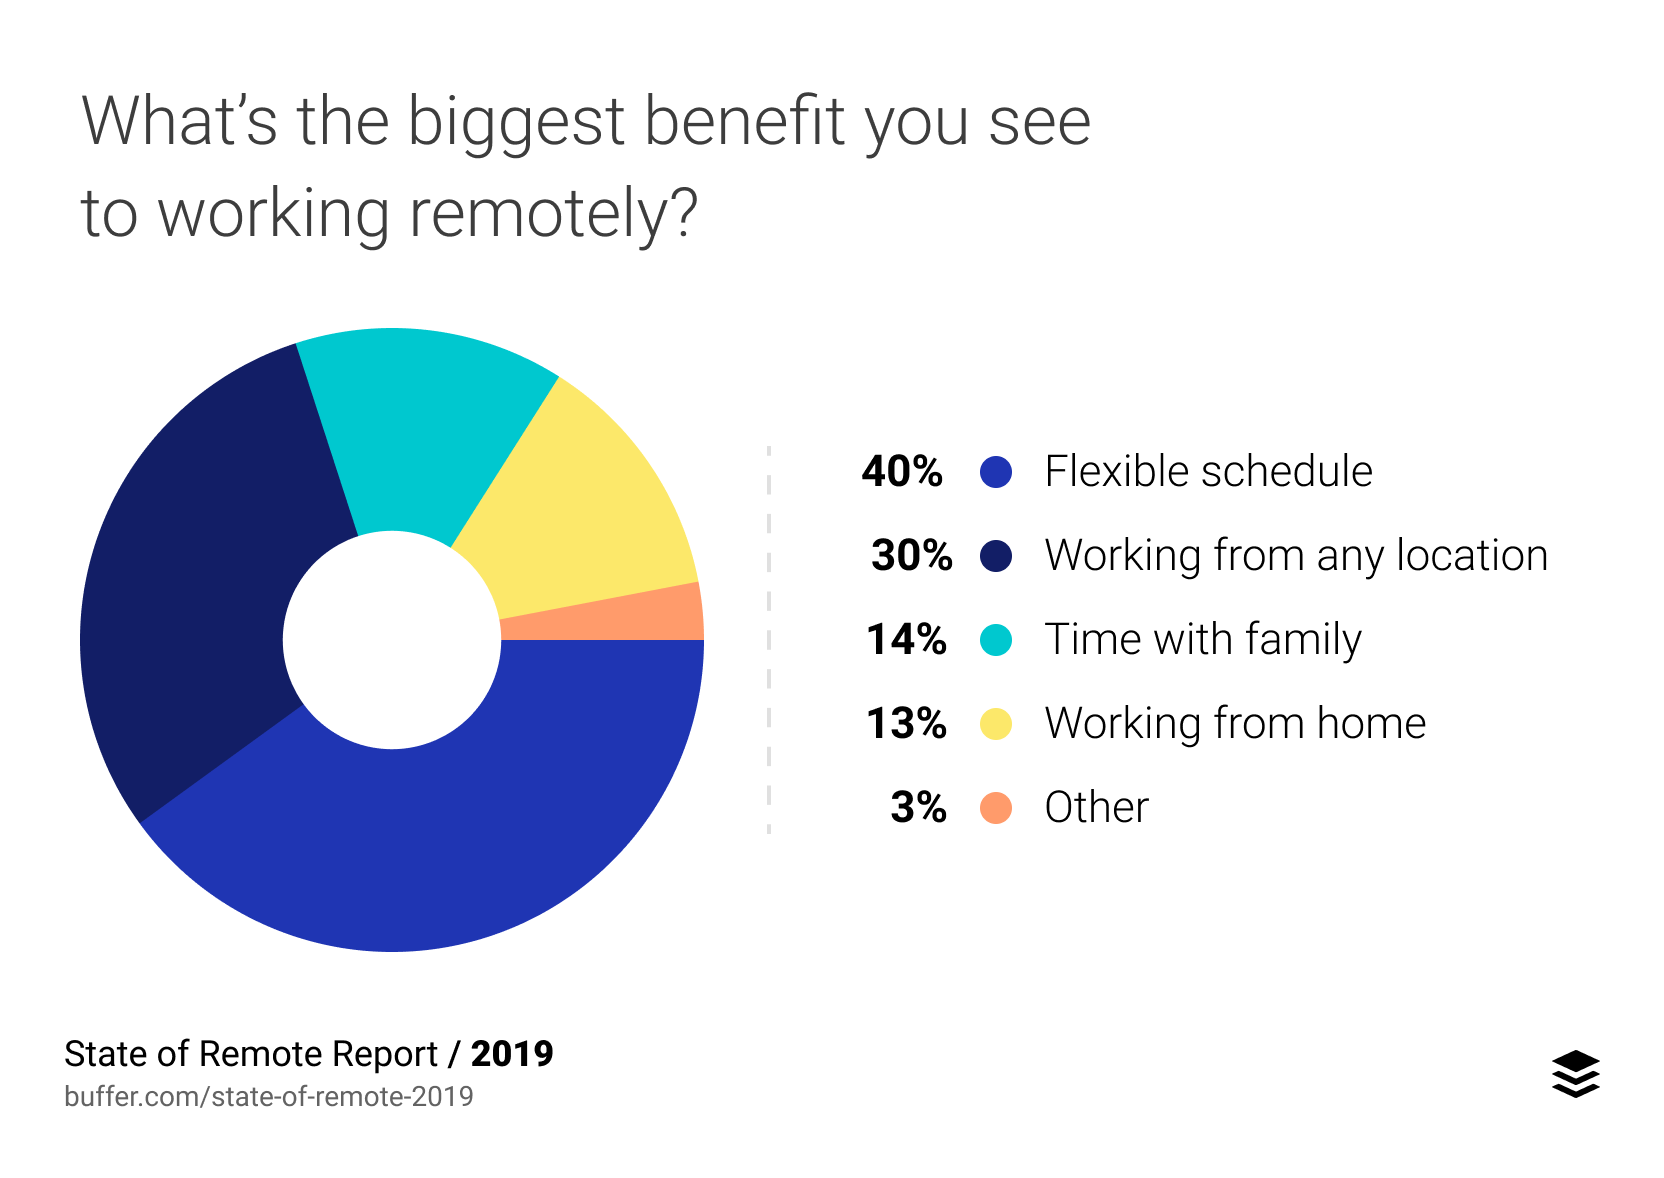 Chart showing biggest benefit of working remotely